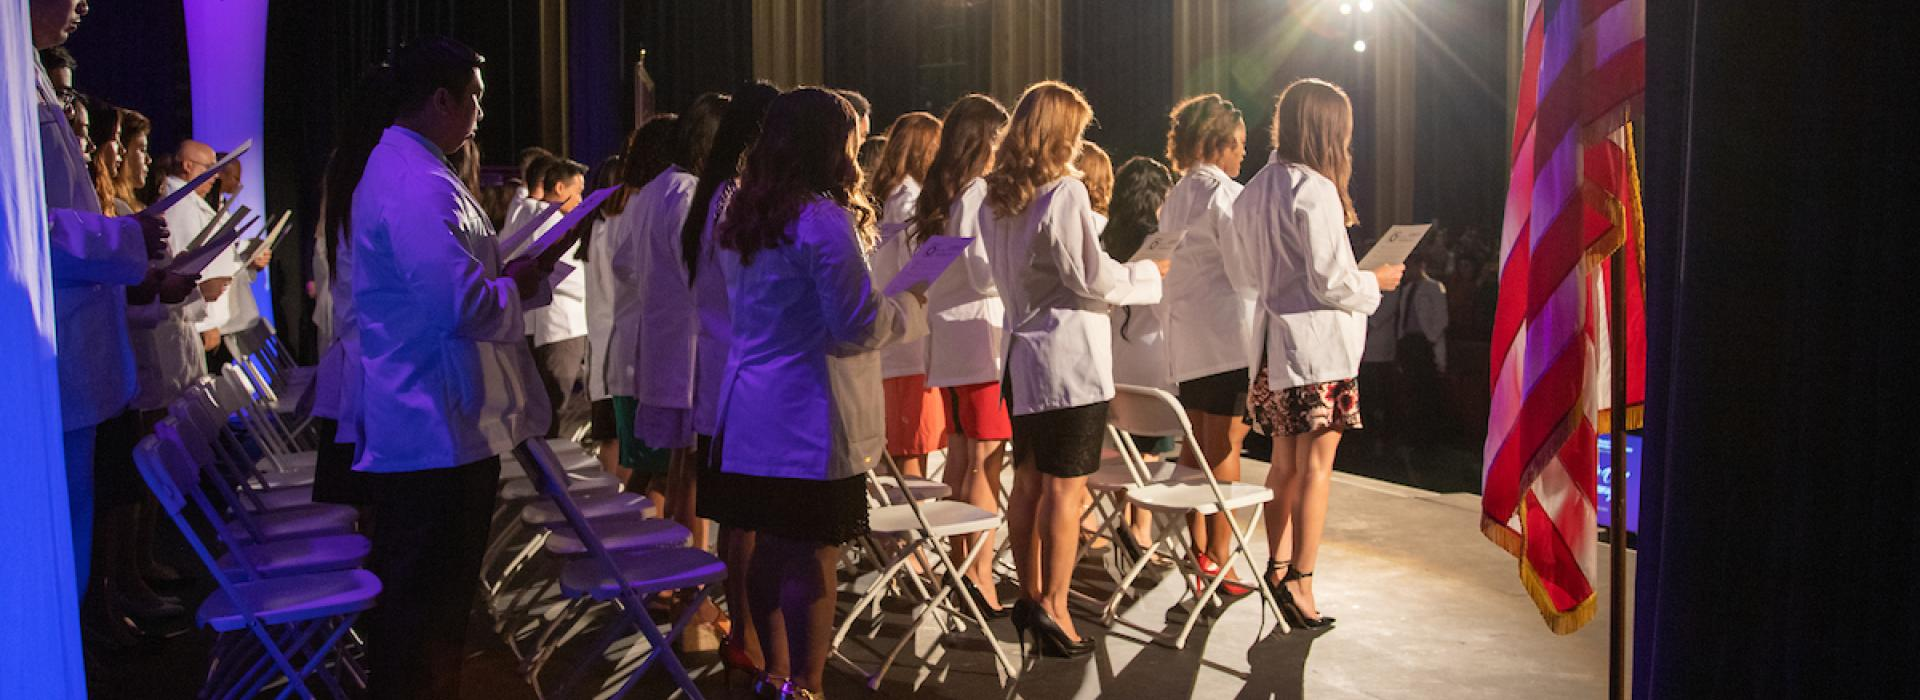 Behind the stage during White Coat Ceremony